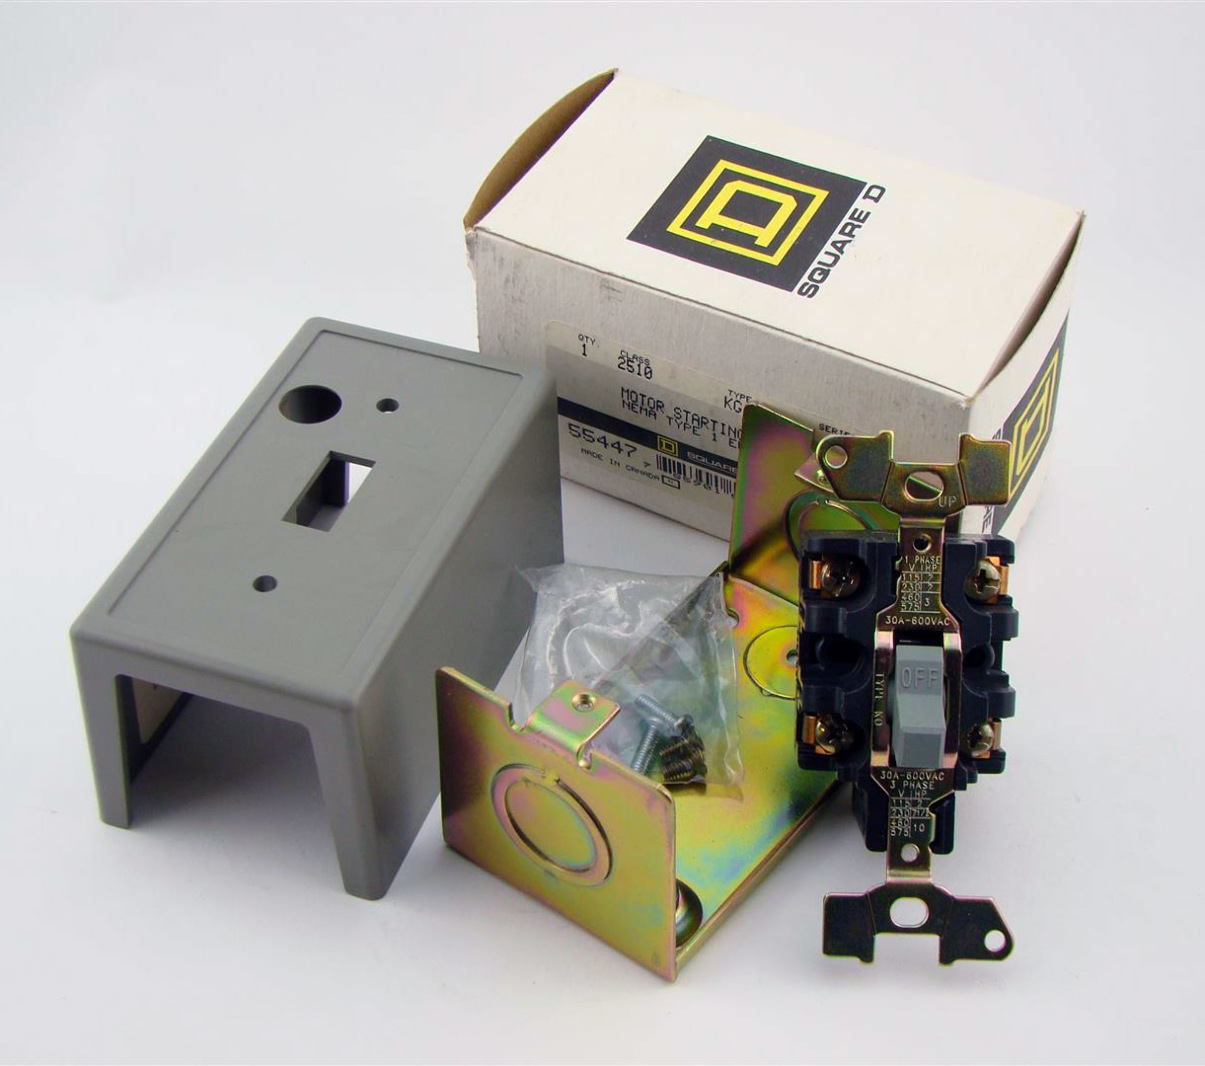 Square D Motor Starting Switch Type 1 Enclosure 55447